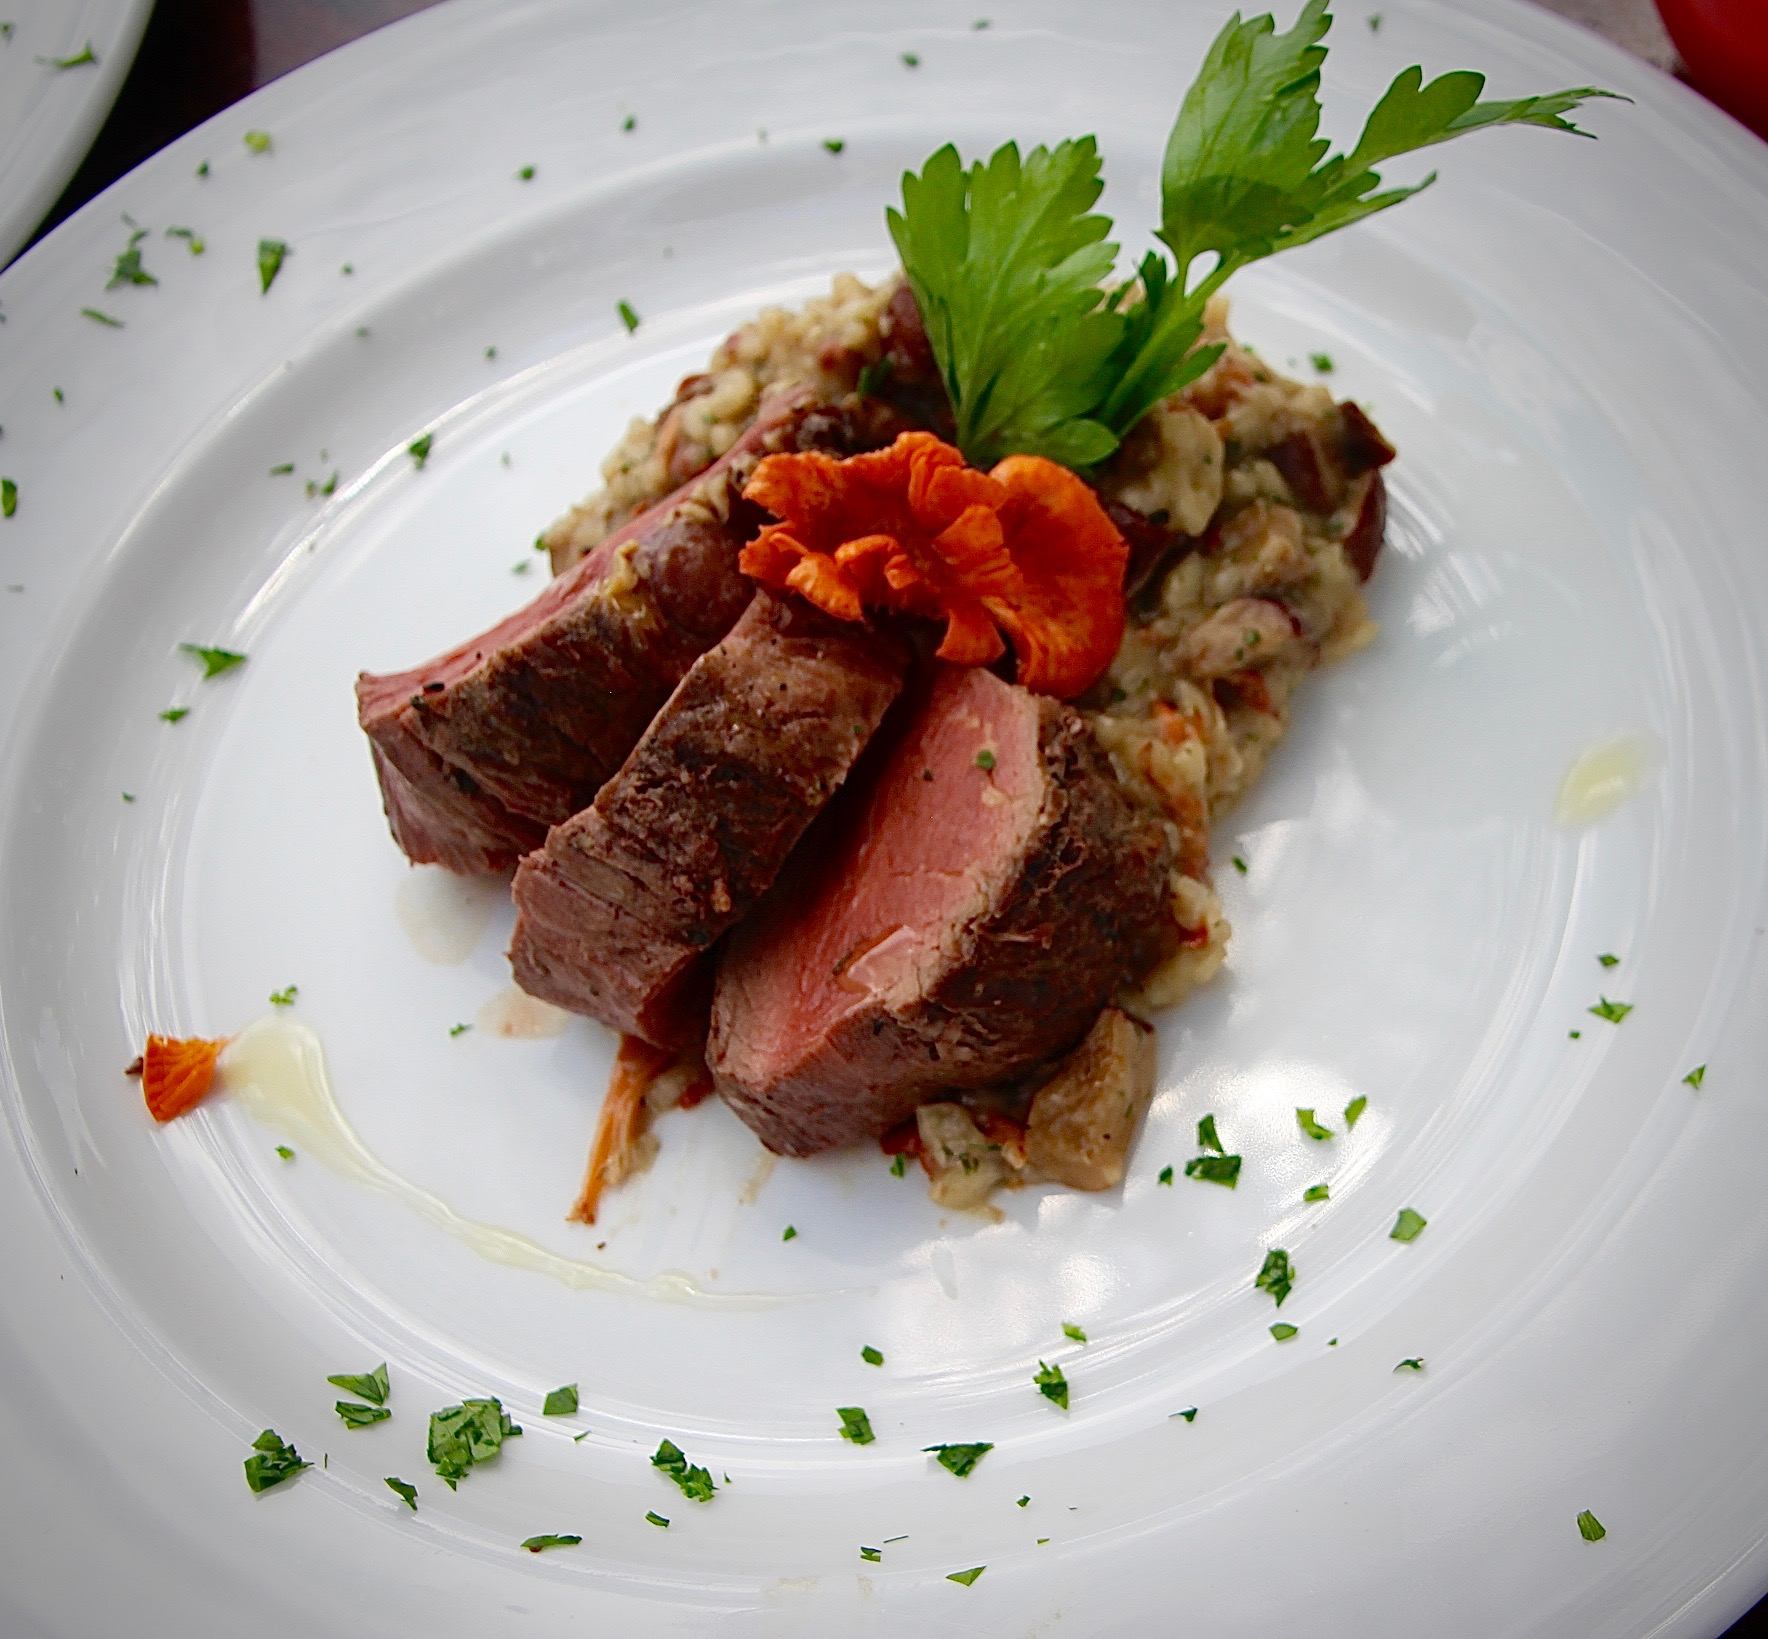 Beef Tenderloin with White Truffle oil, and Wild Mushroom Risotto.